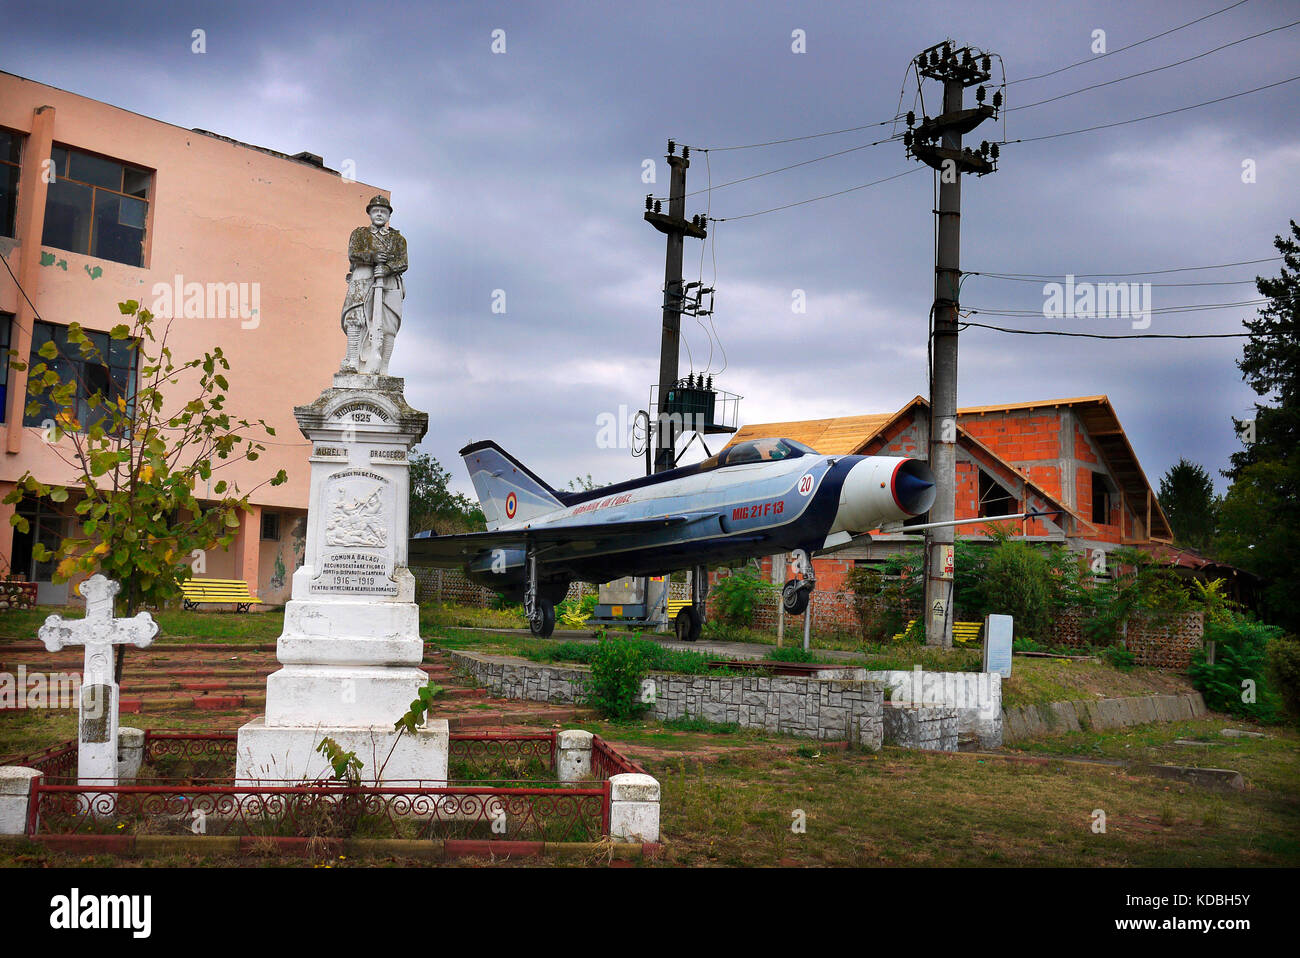 Romanian Air Force Mig 21 jet fighter on display at a memorial in the village of Balaci in Romania. - Stock Image